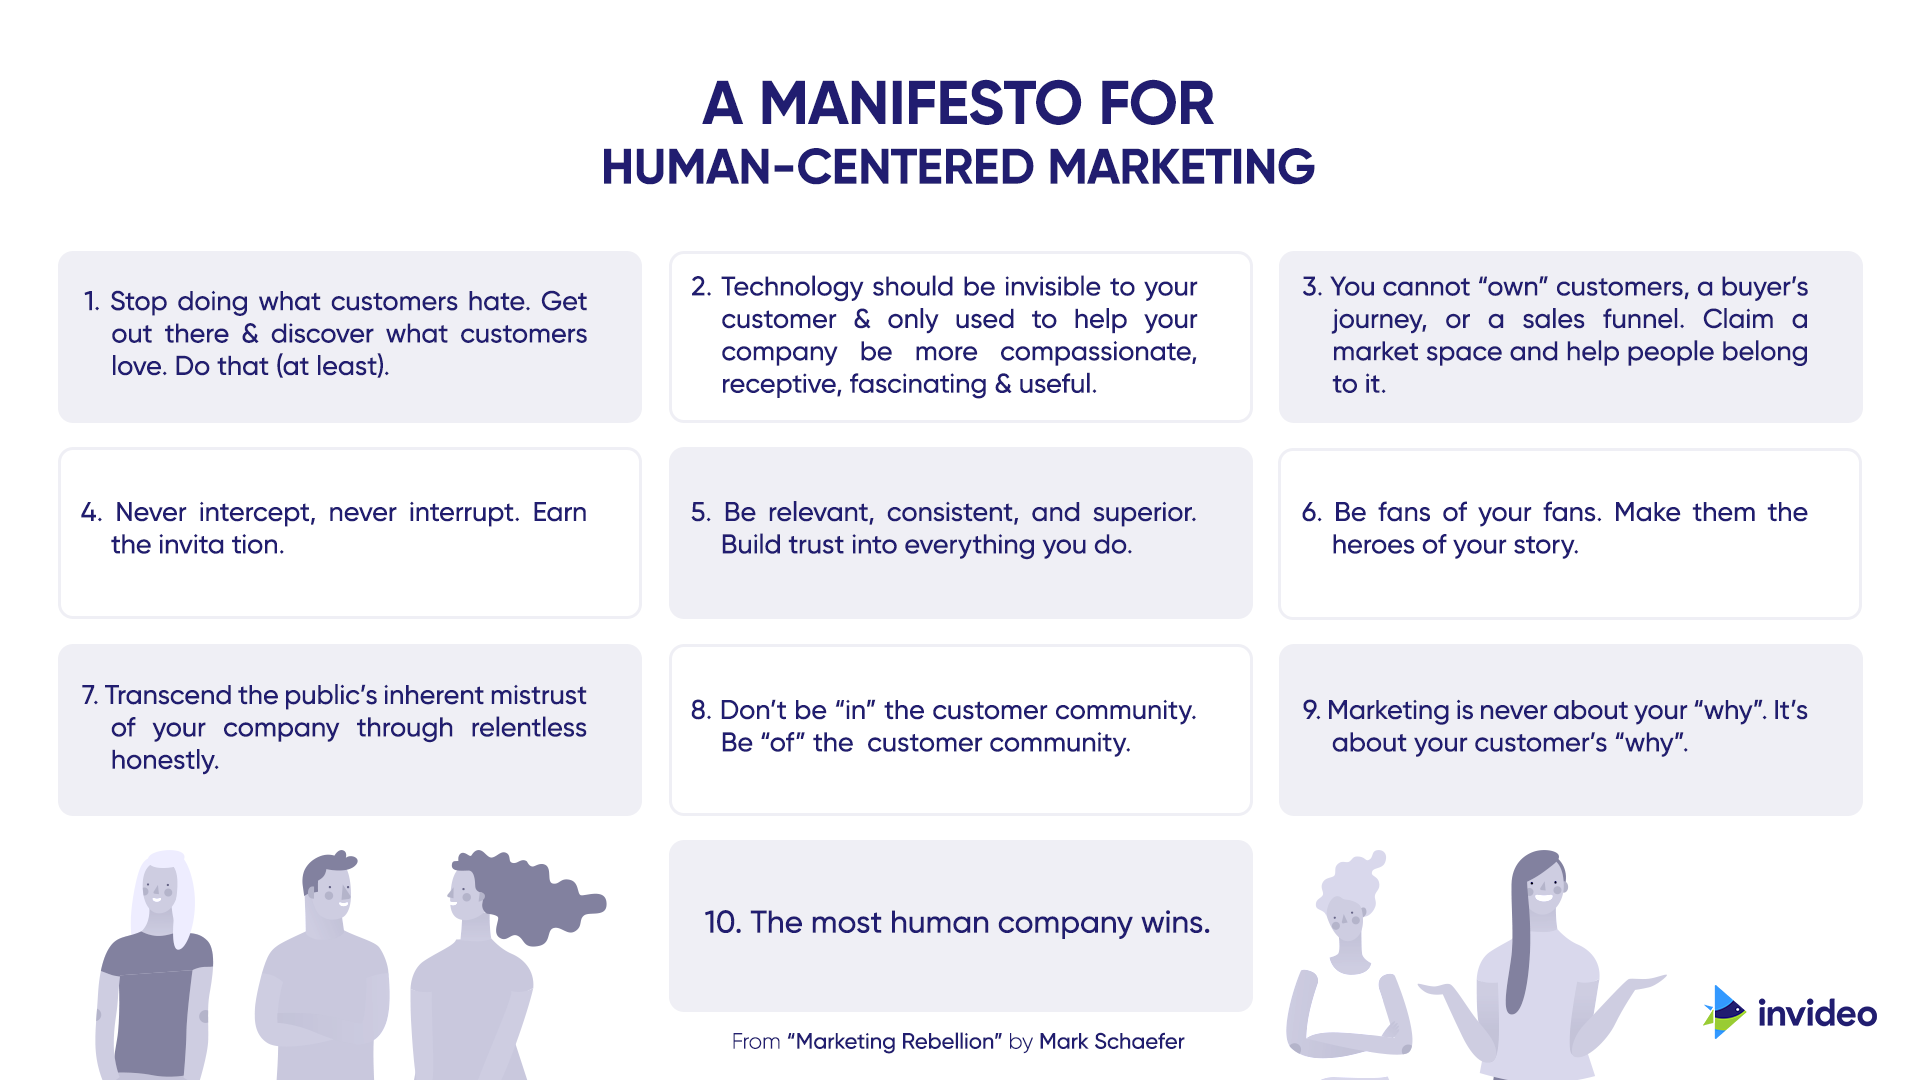 Manifesto For Human-Centered Marketing